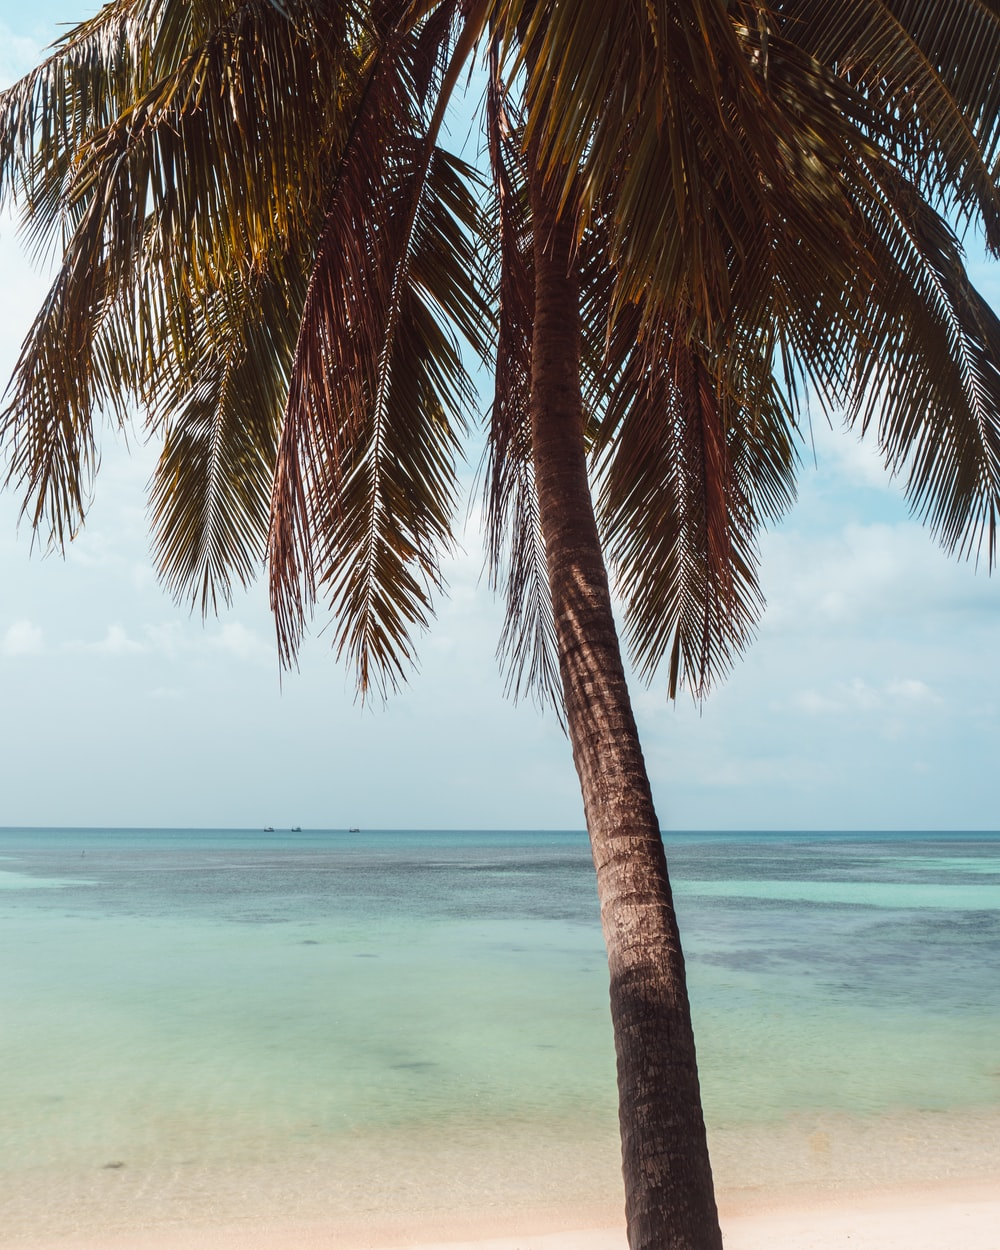 brown and green coconut tree near body of water